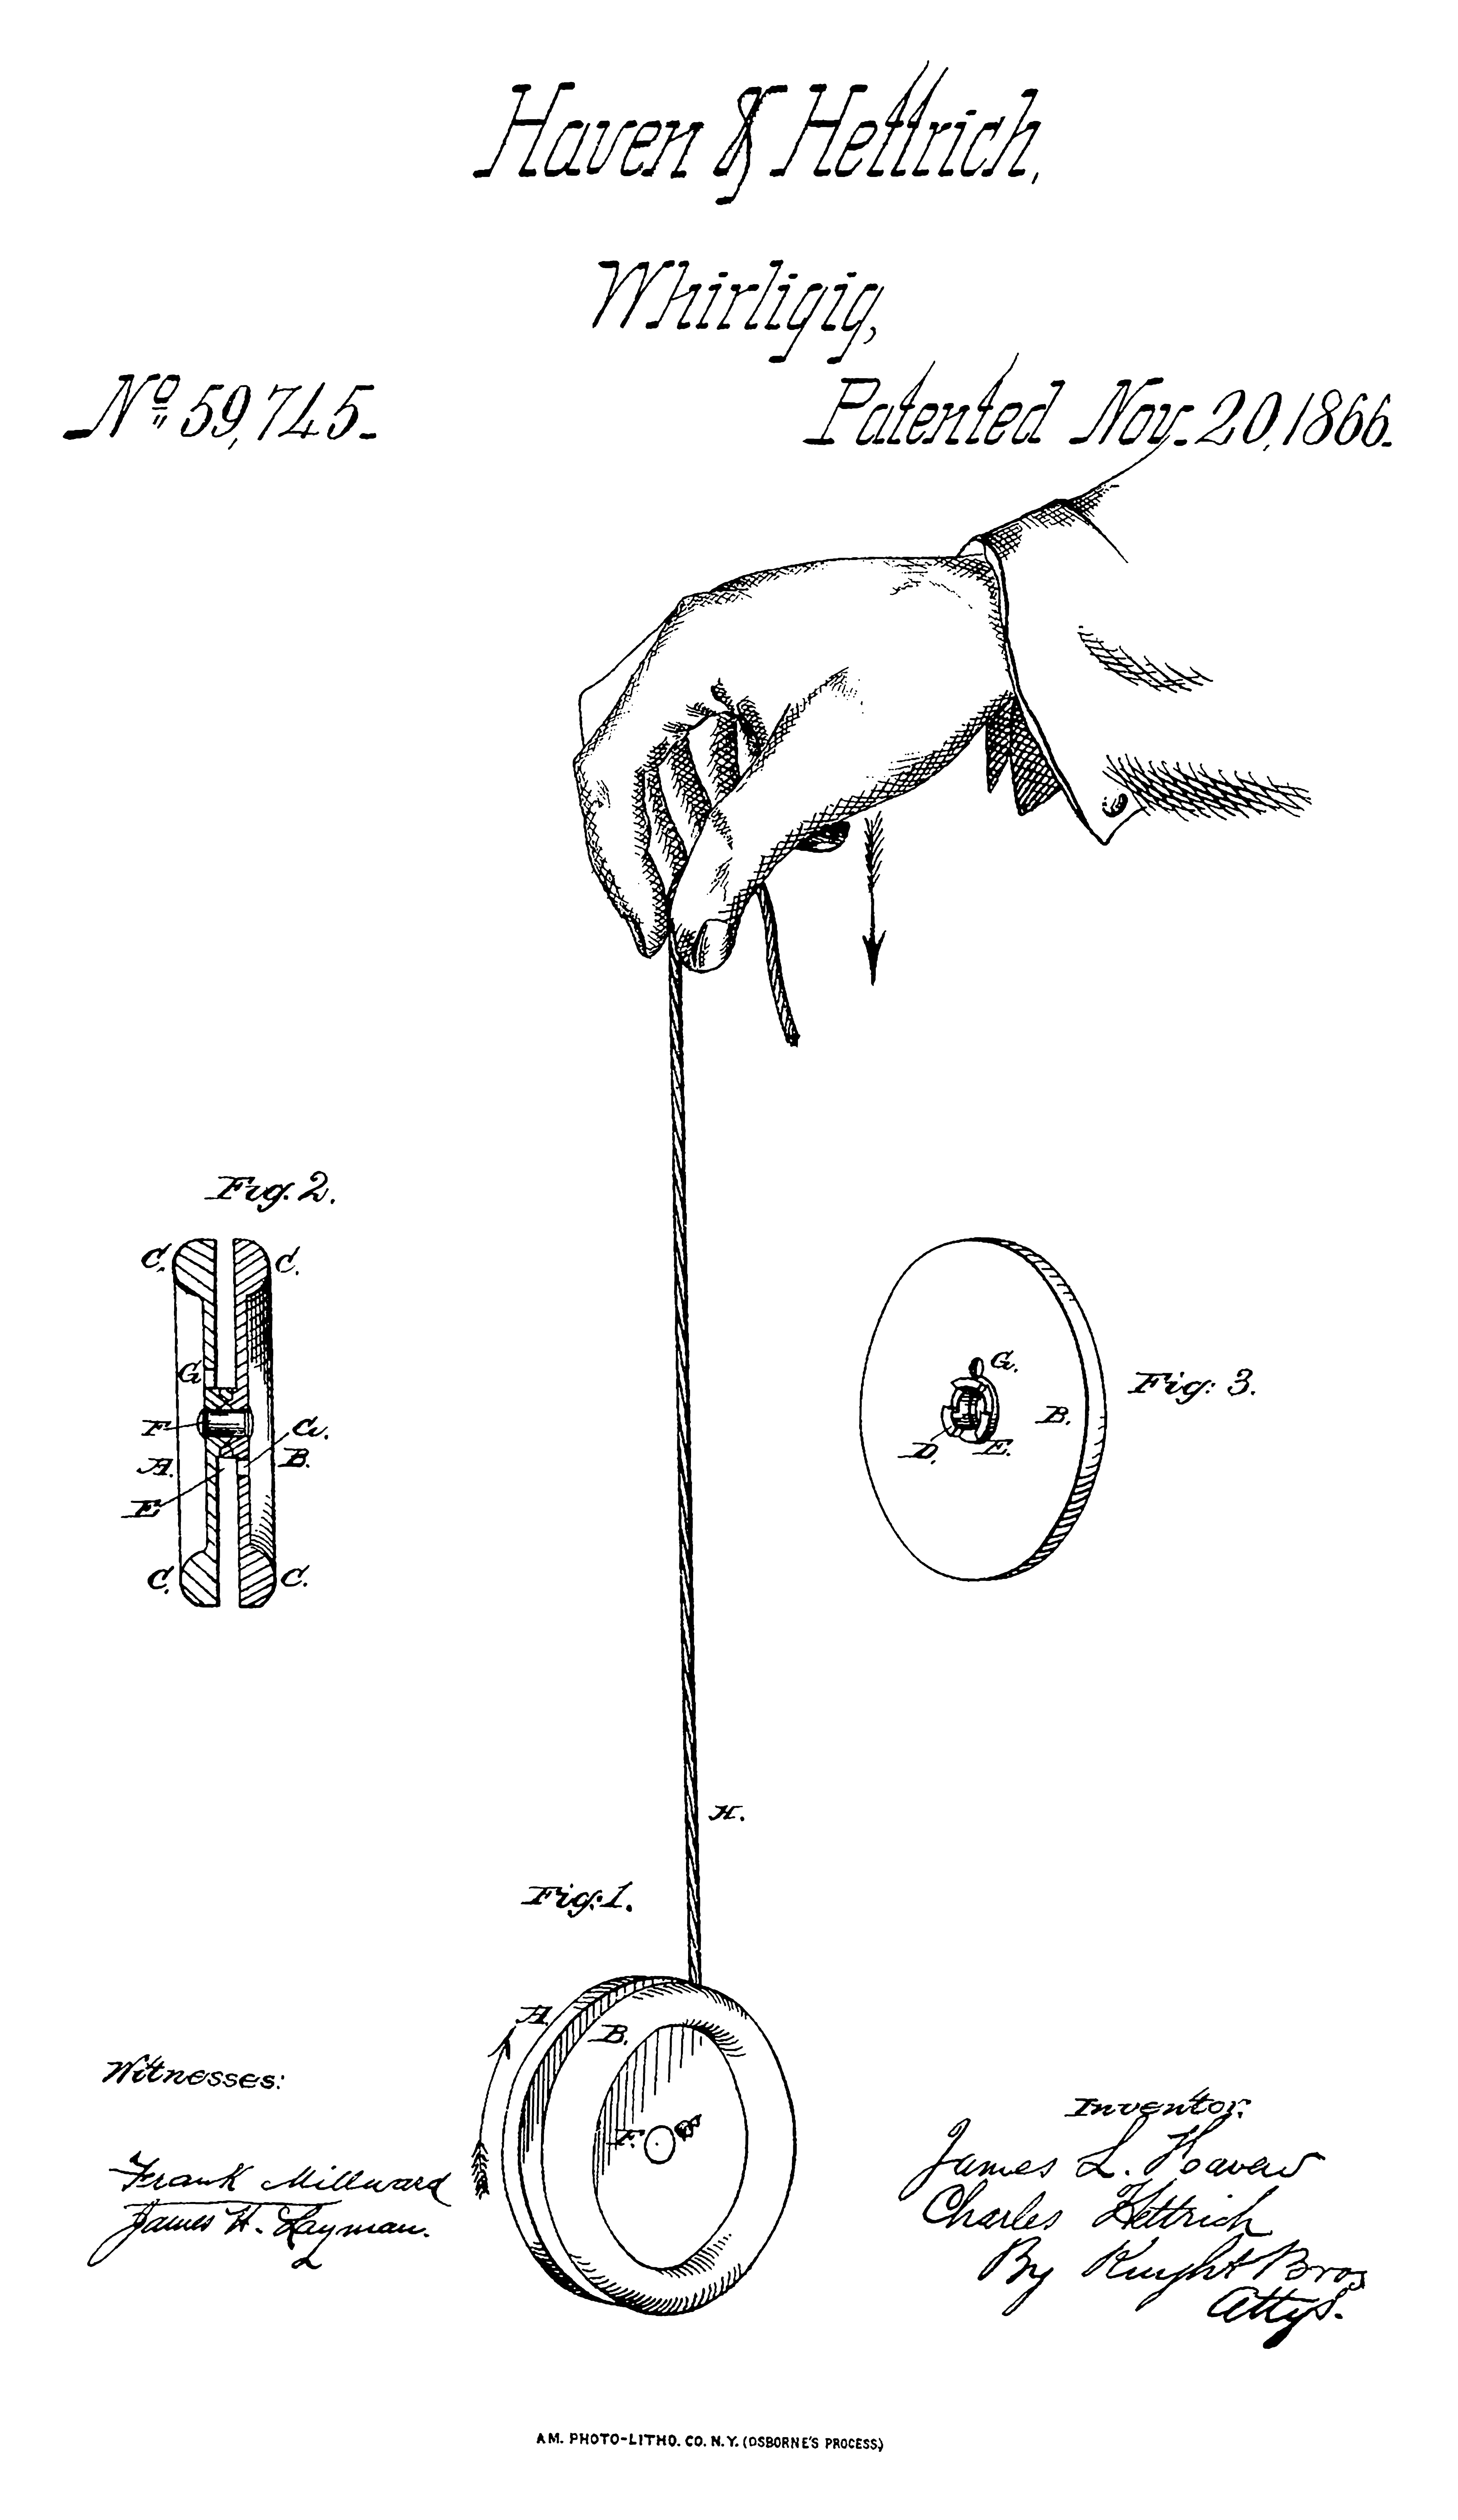 First U.S. Yo-Yo Patent, 1866